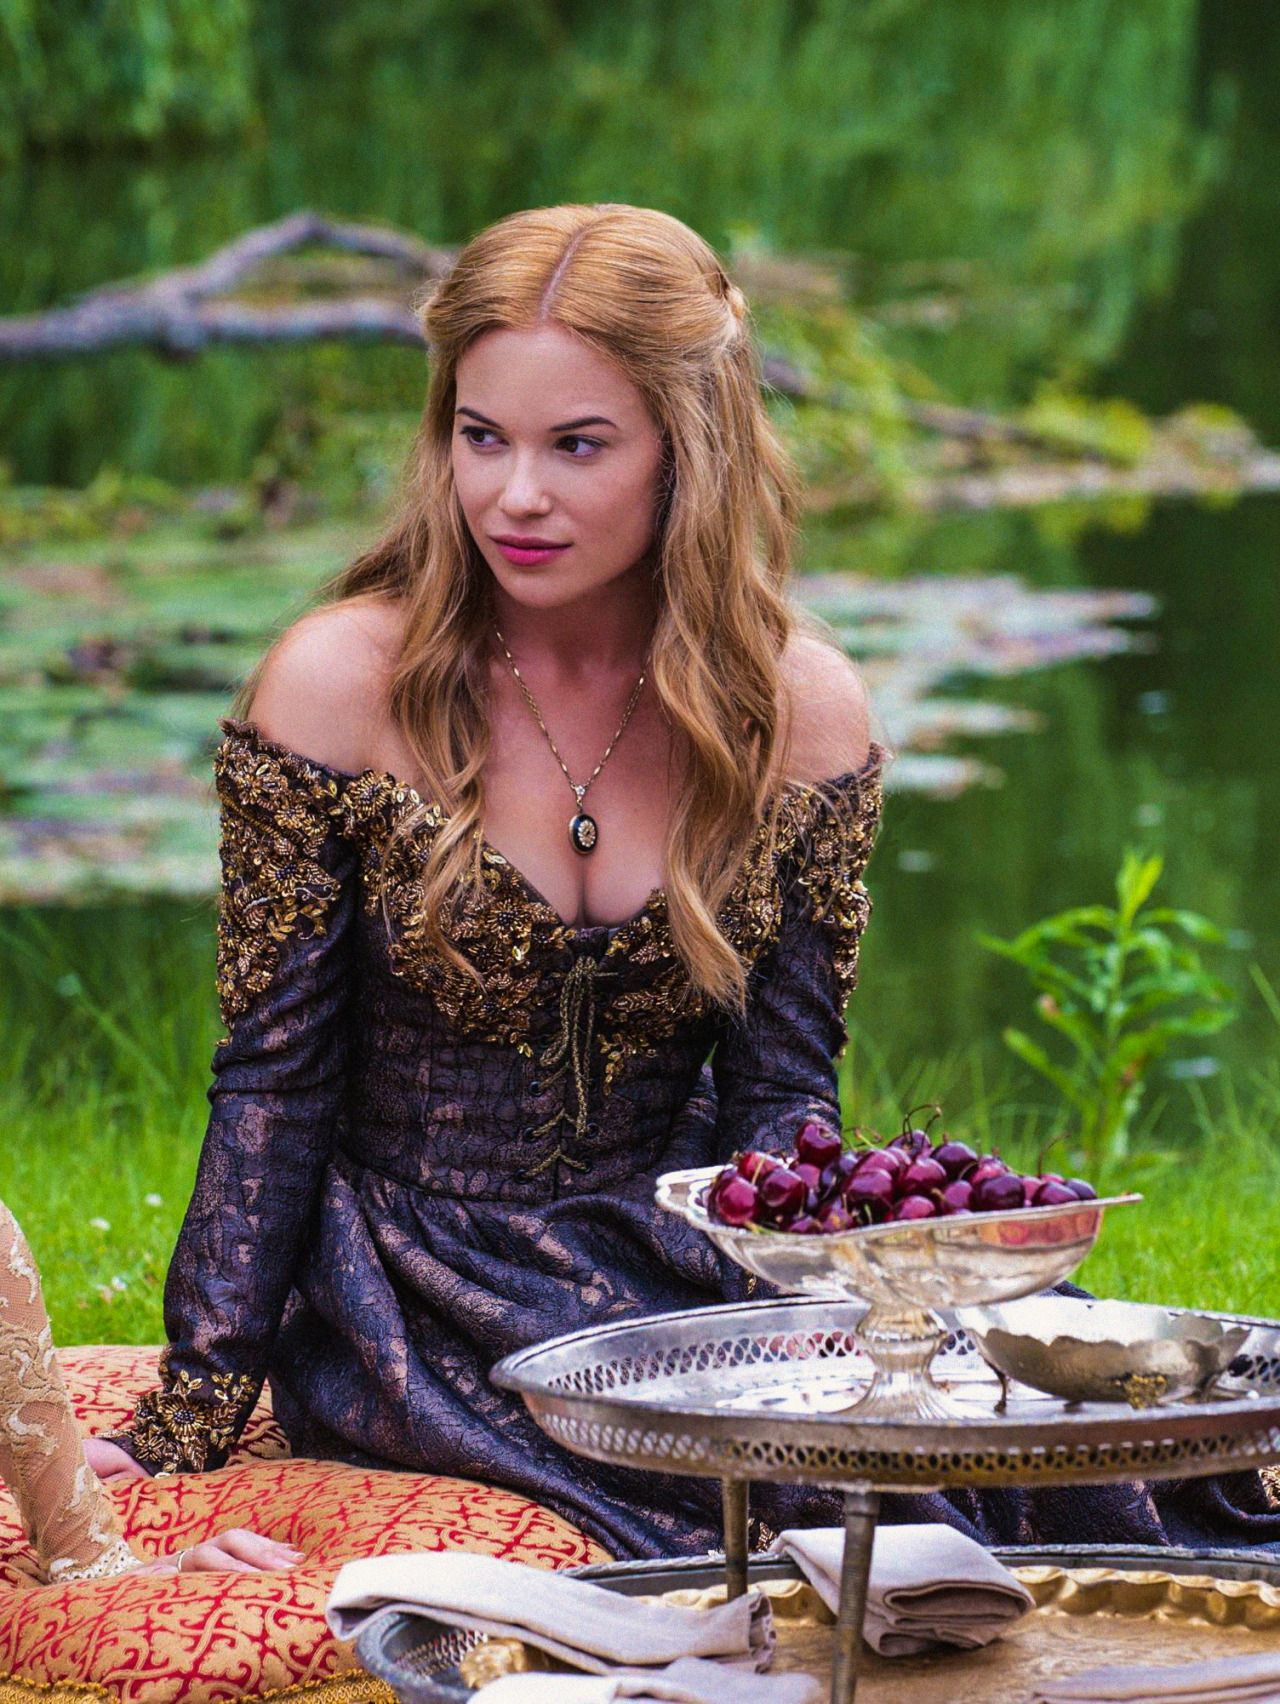 Celina Sinden as Greer Norwood in Reign (TV Series, 2013).